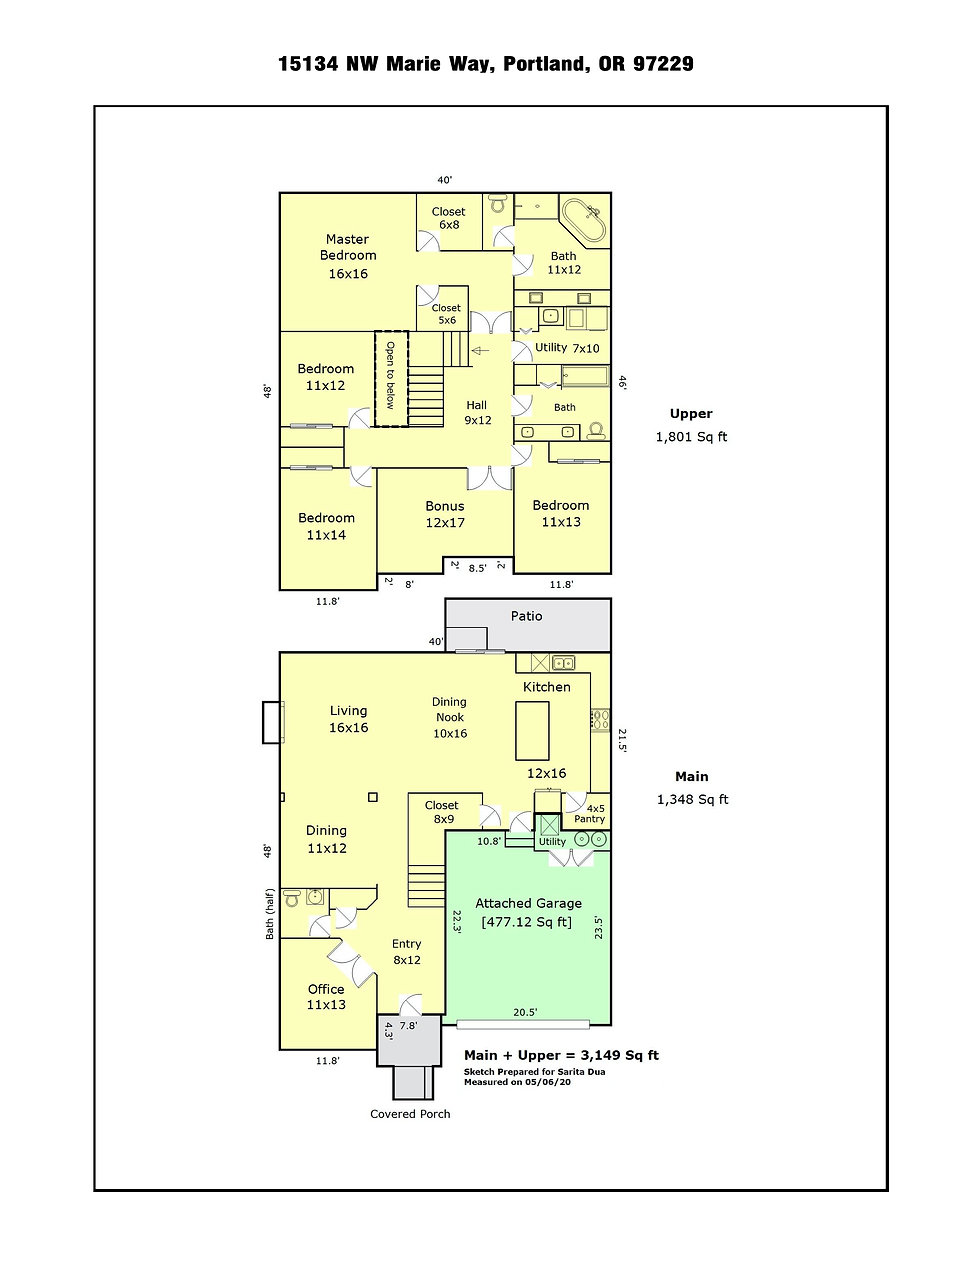 15134 NW Marie Way Floor Plan-2.jpg